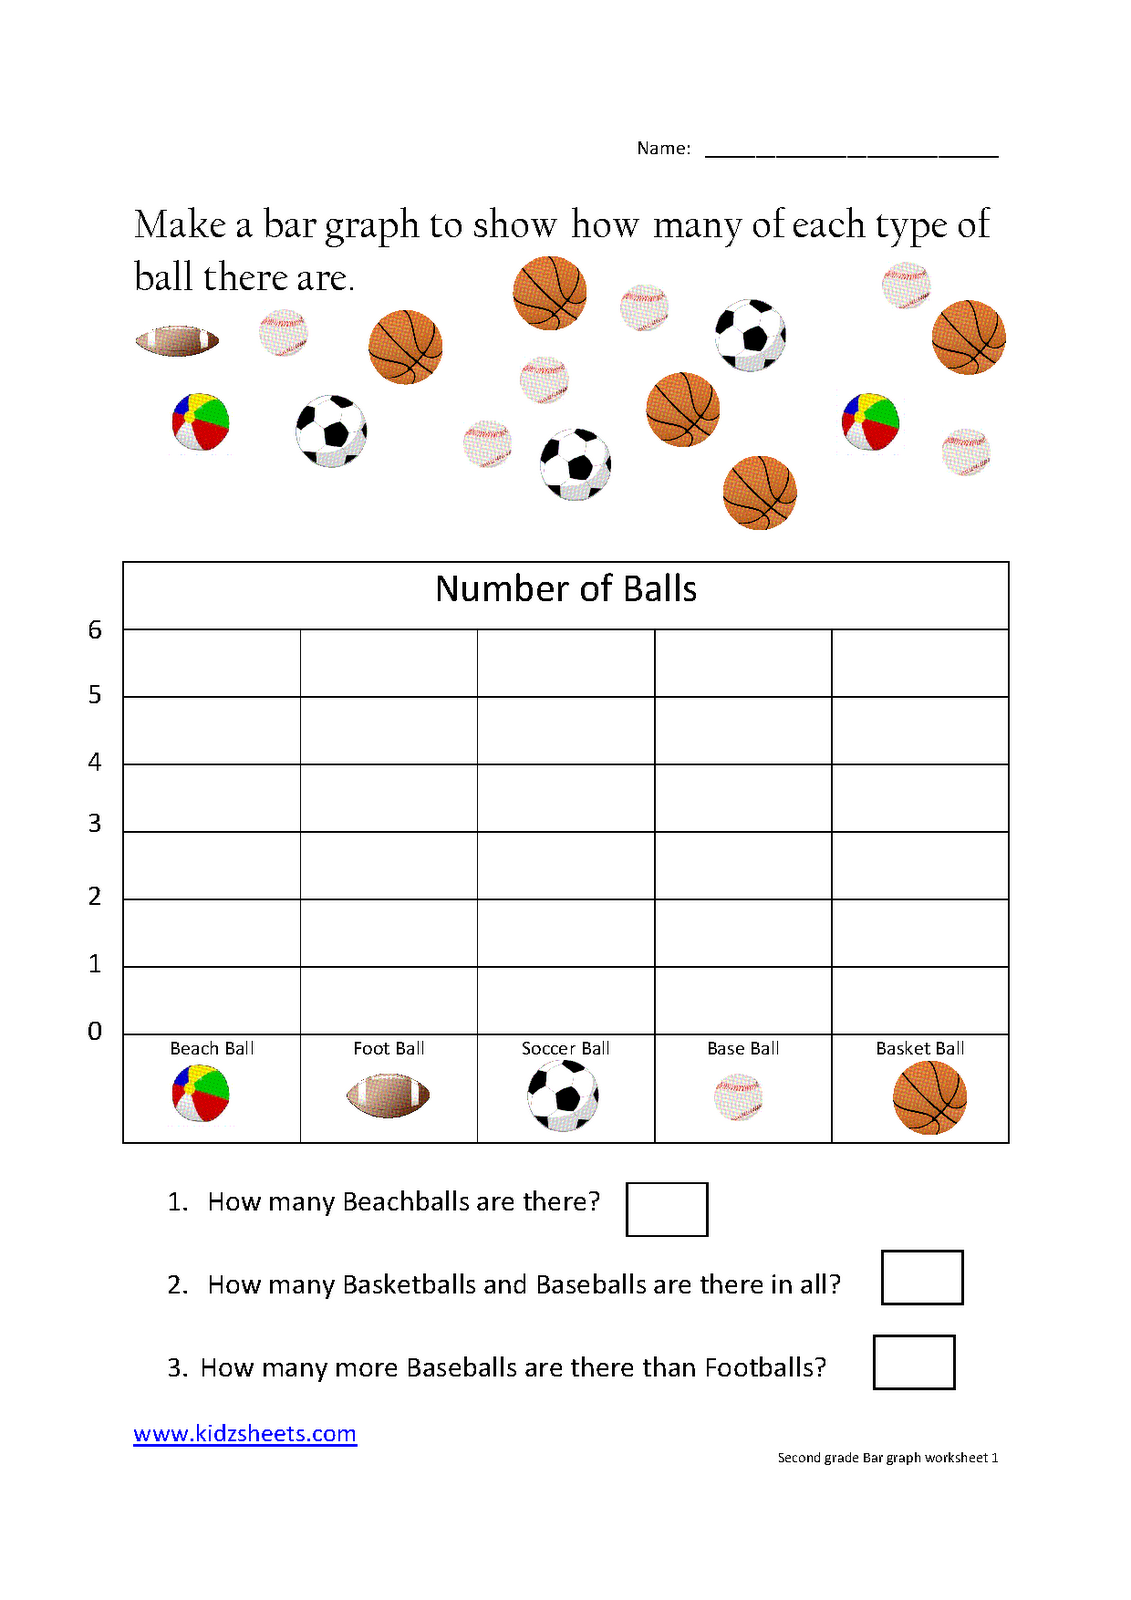 math worksheet : kidz worksheets second grade bar graph worksheet1 : Graphing Worksheets For Kindergarten